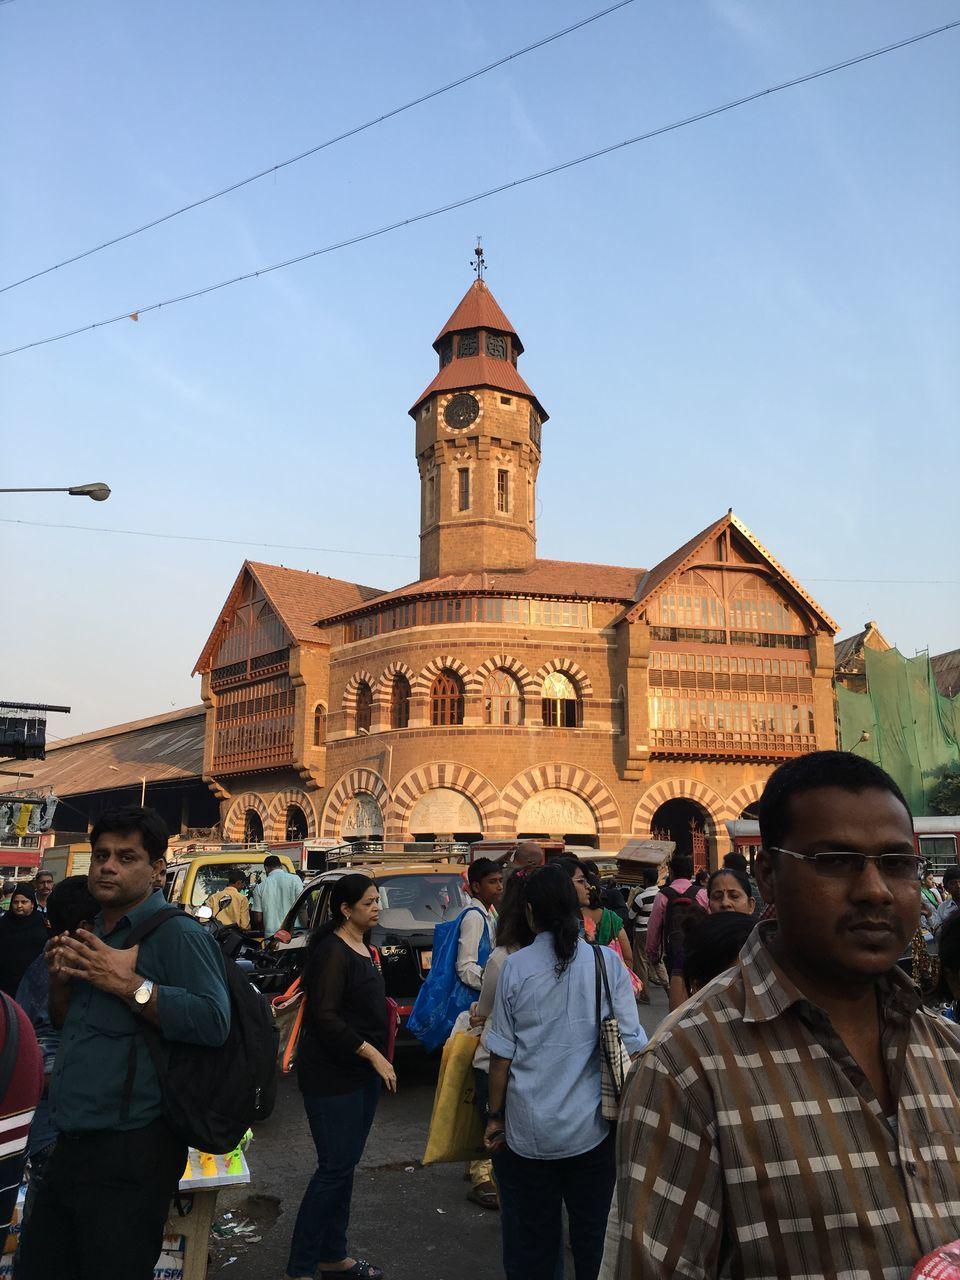 real people, large group of people, architecture, religion, building exterior, spirituality, built structure, place of worship, men, lifestyles, day, women, outdoors, sky, travel destinations, standing, togetherness, crowd, people